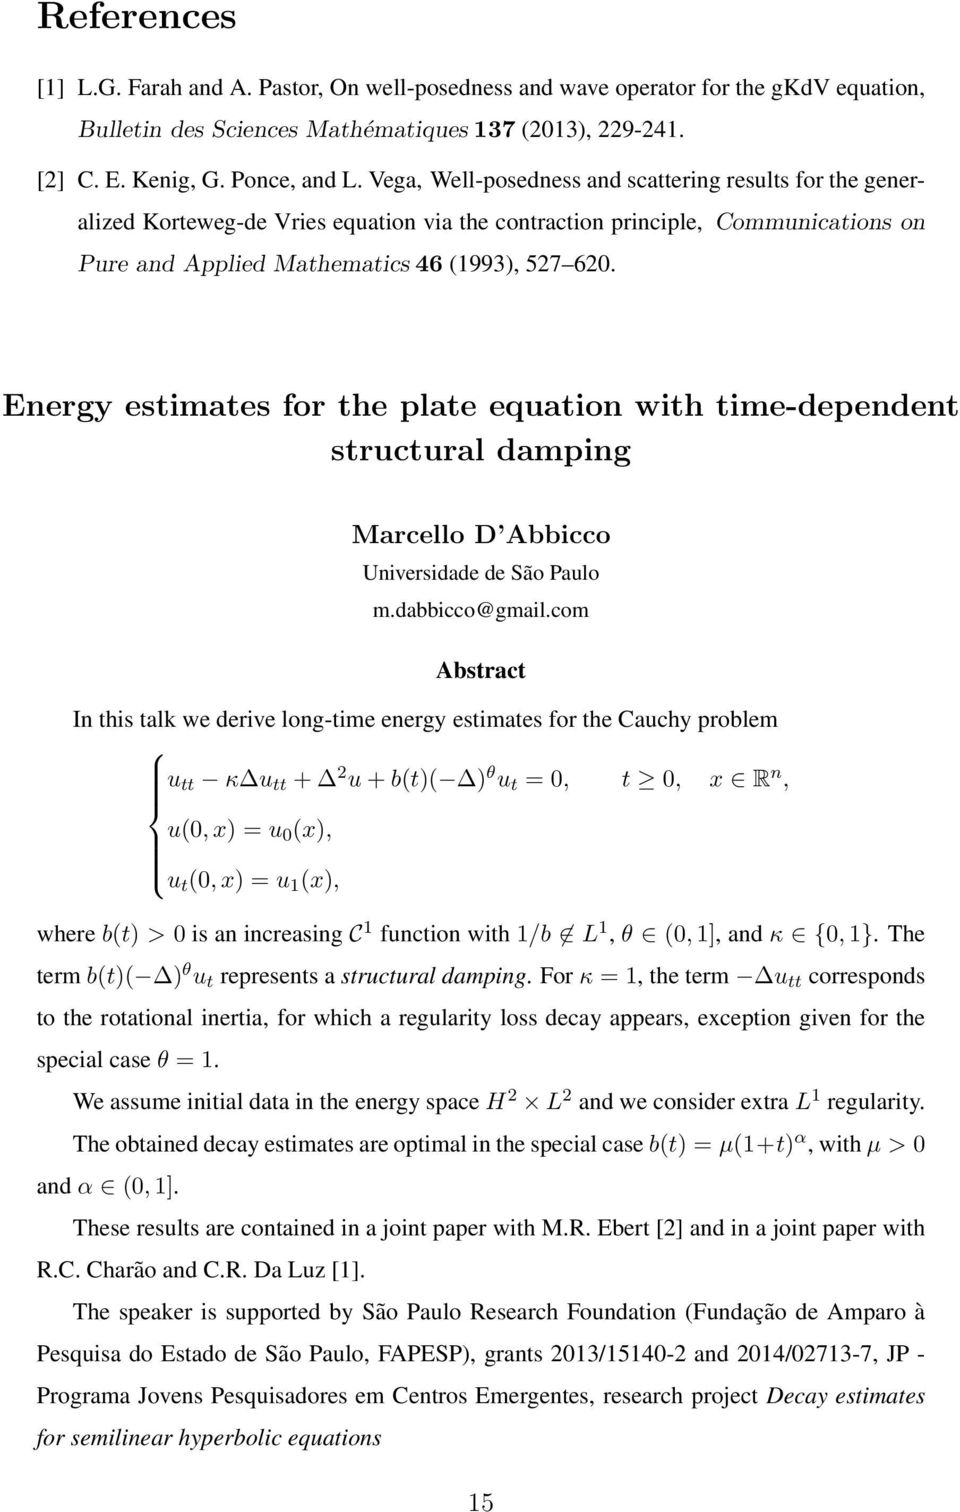 Energy estimates for the plate equation with time-dependent structural damping Marcello D Abbicco Universidade de São Paulo m.dabbicco@gmail.